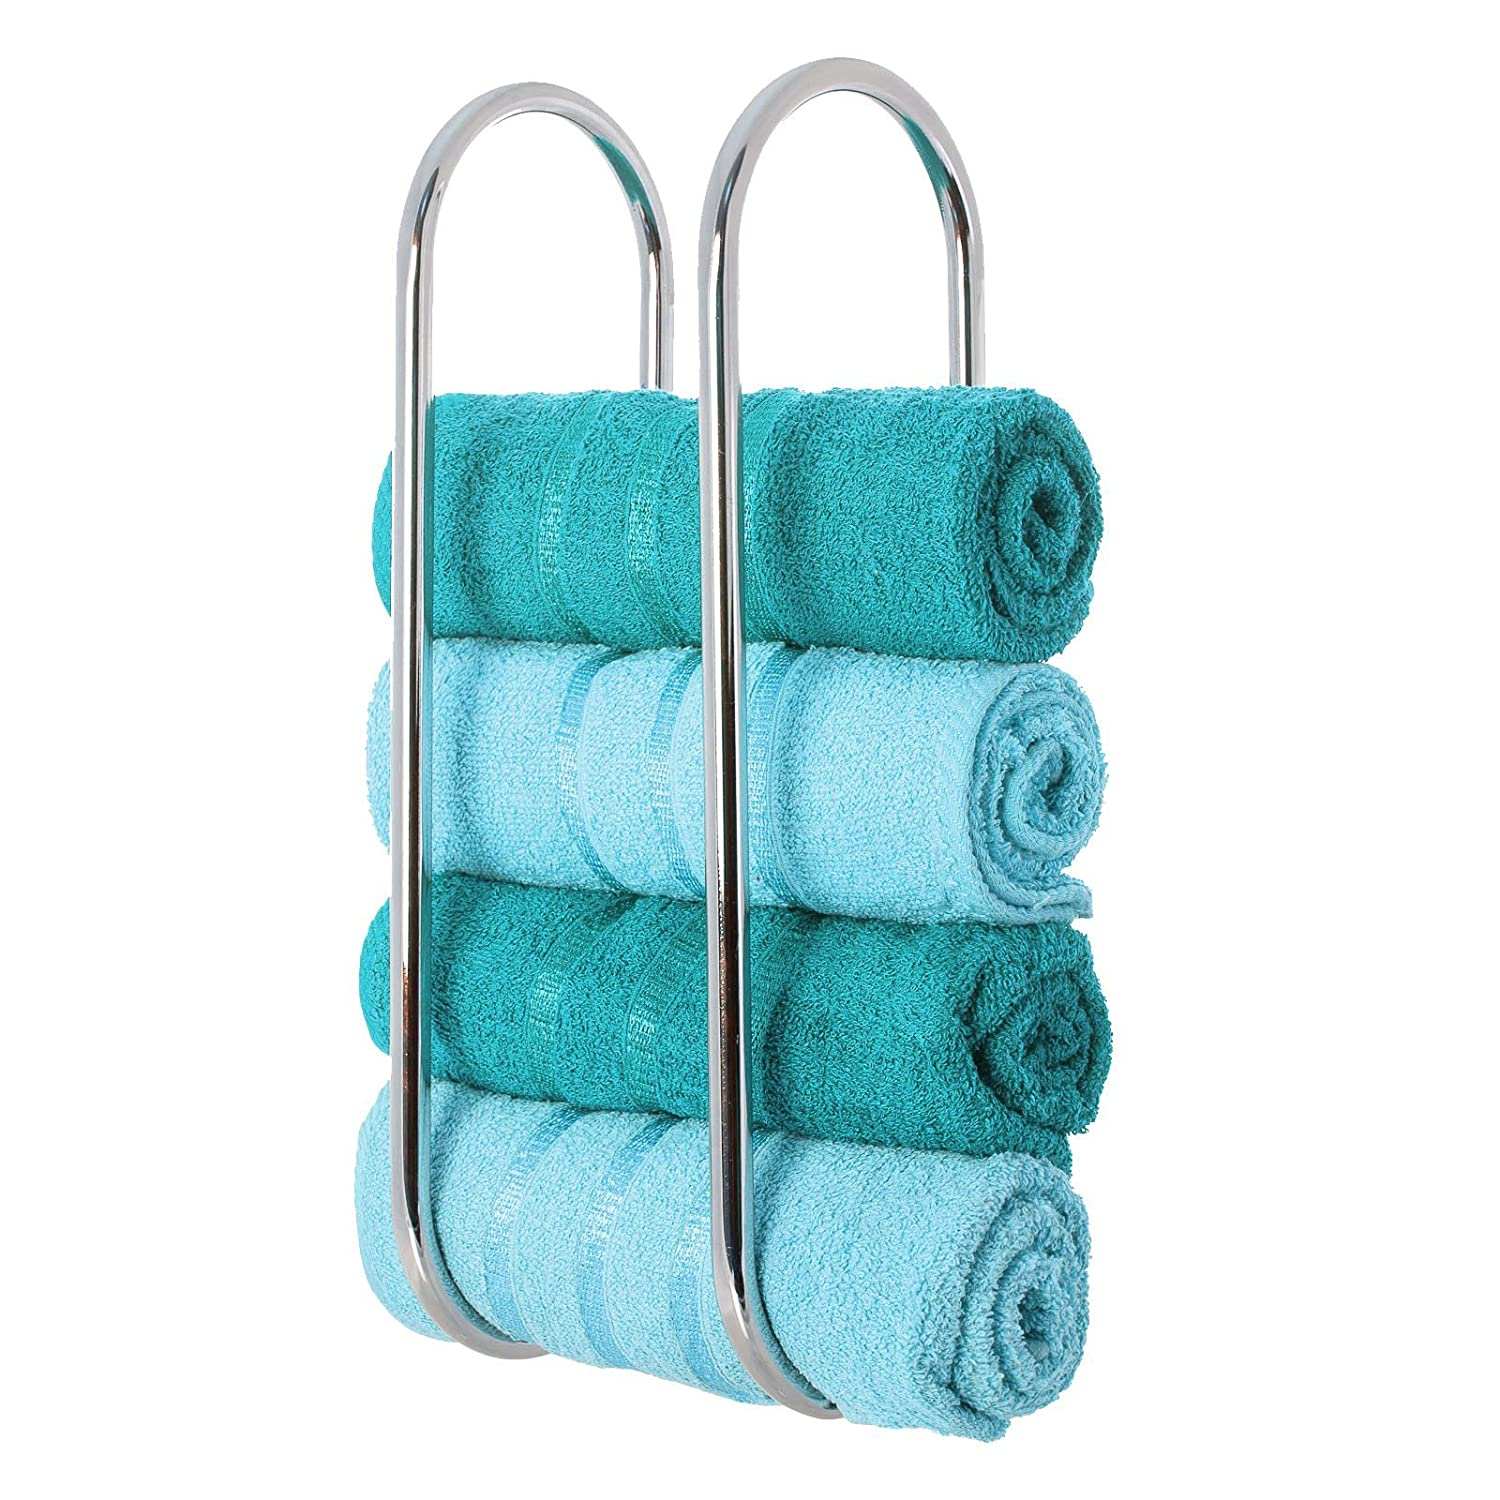 Towel Racks: Home & Kitchen: Amazon.co.uk